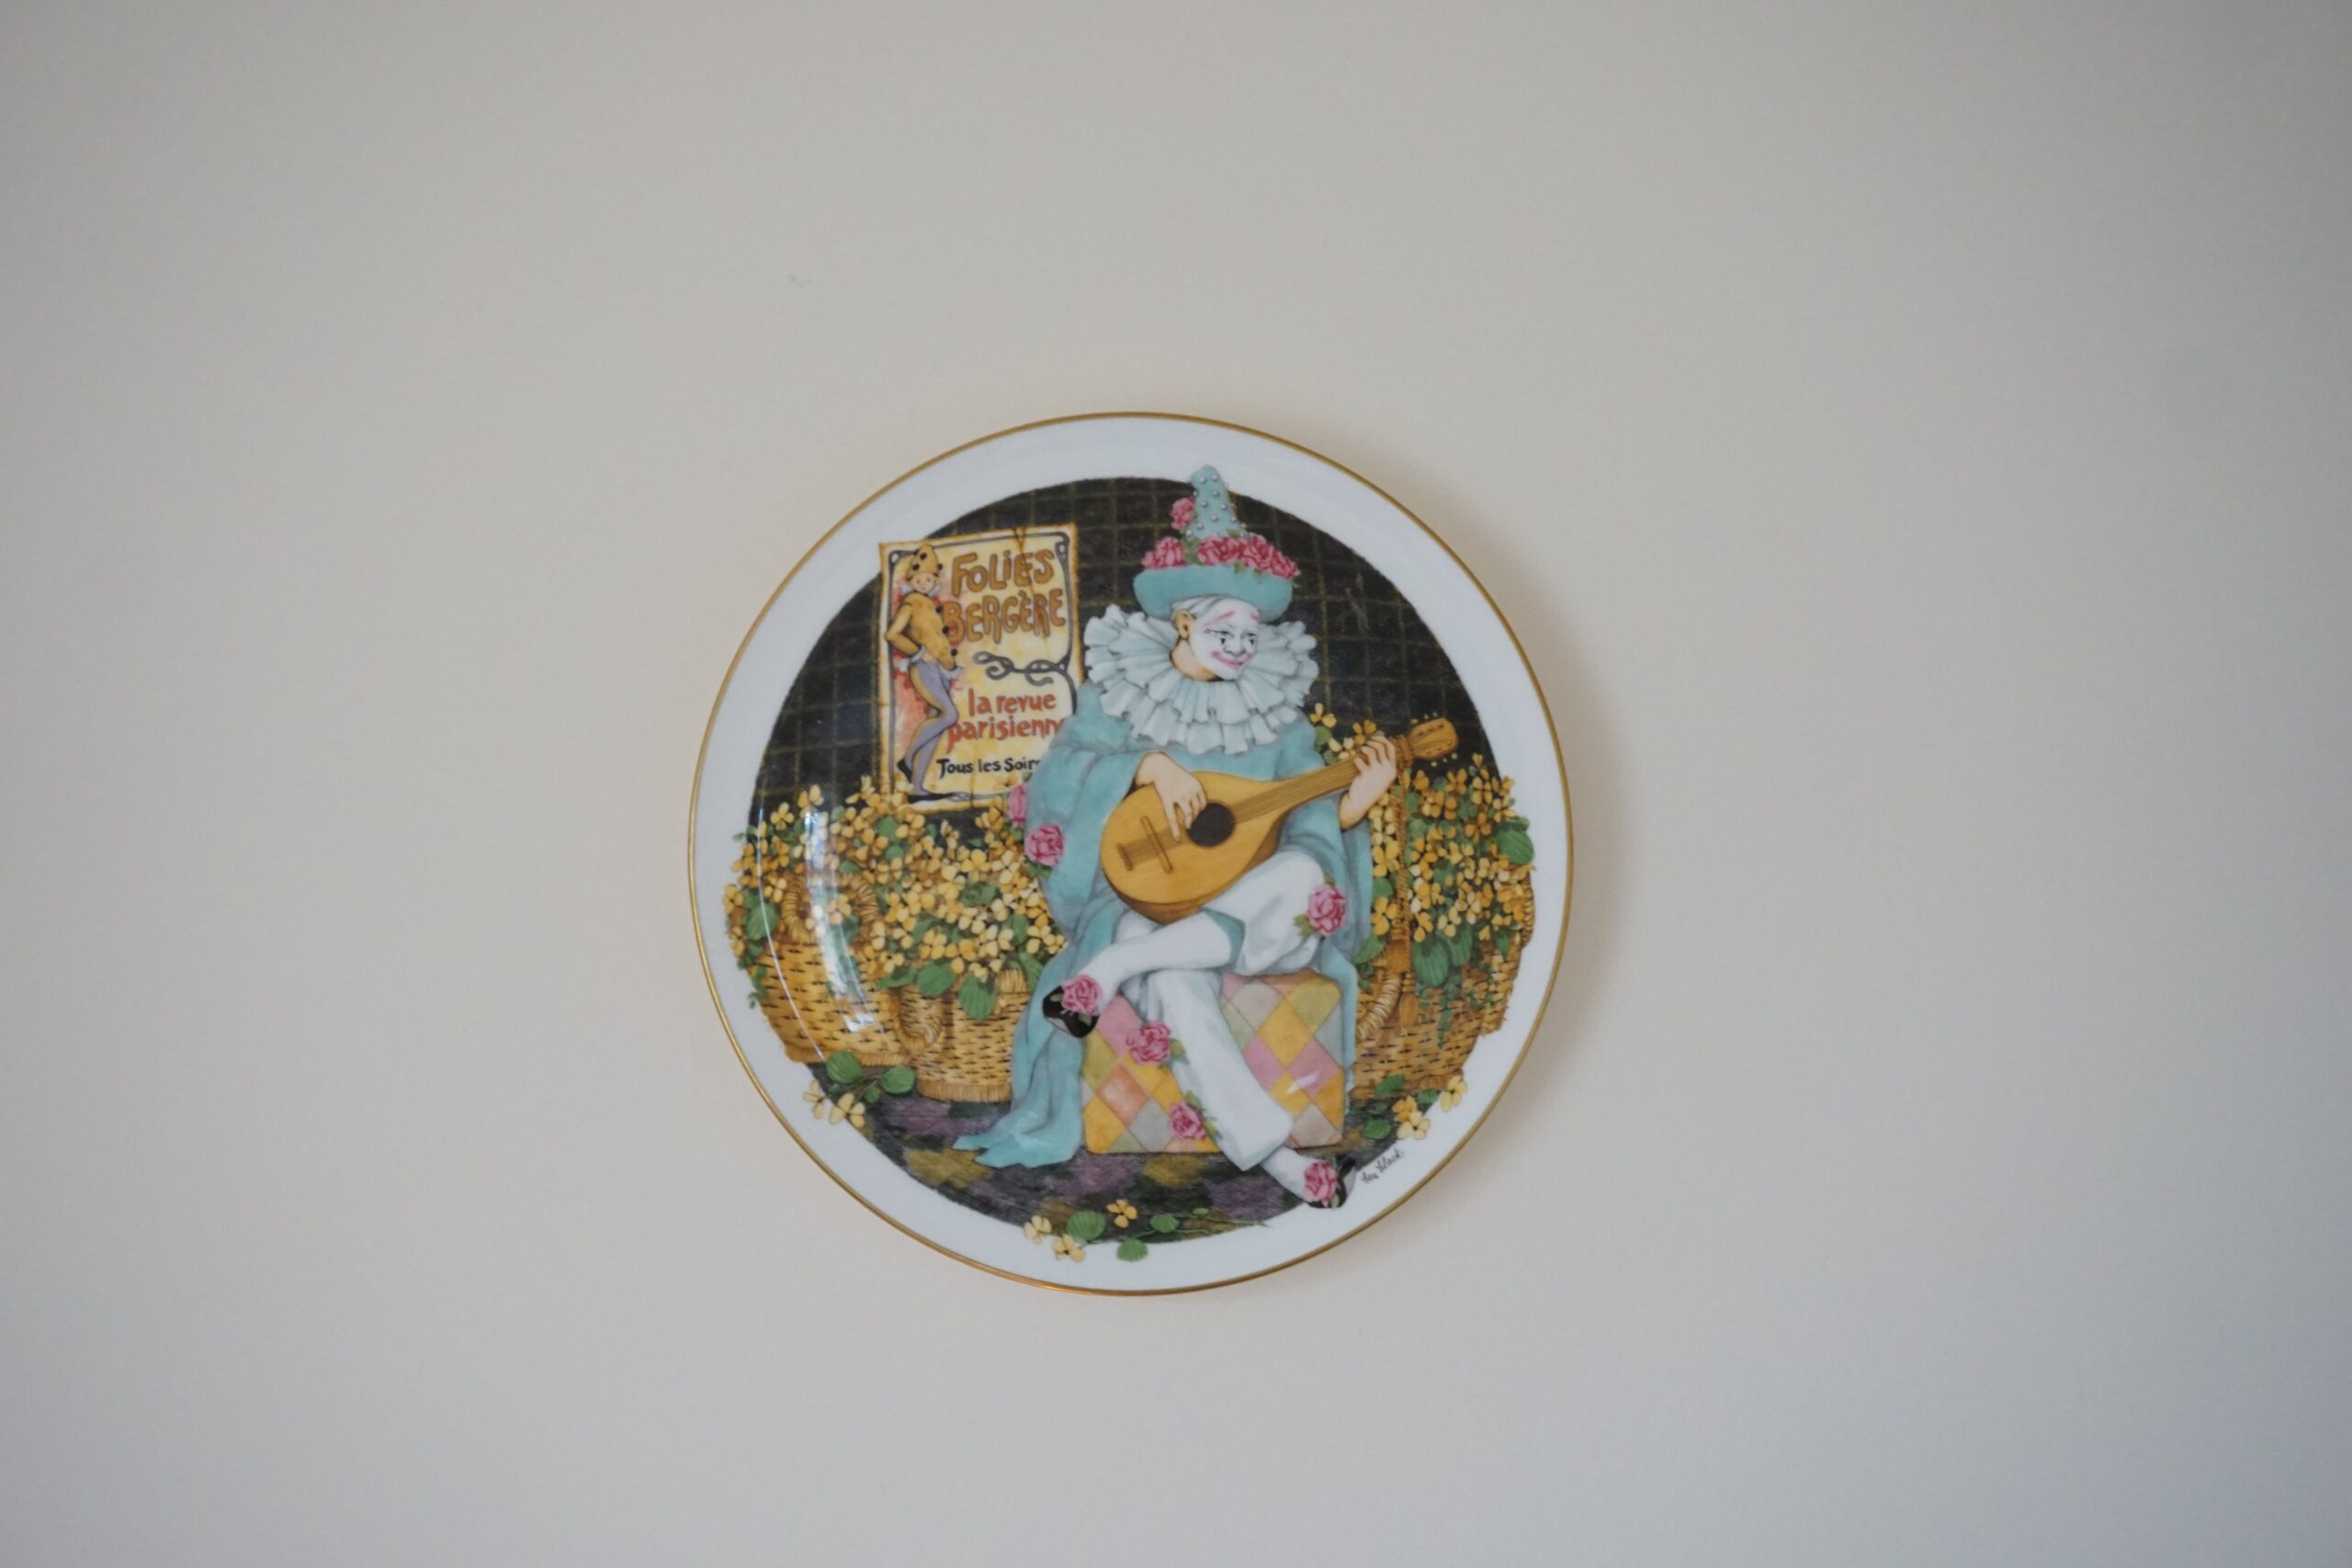 a ceramic plate painted with a mime on the front, hanging on a beige wall